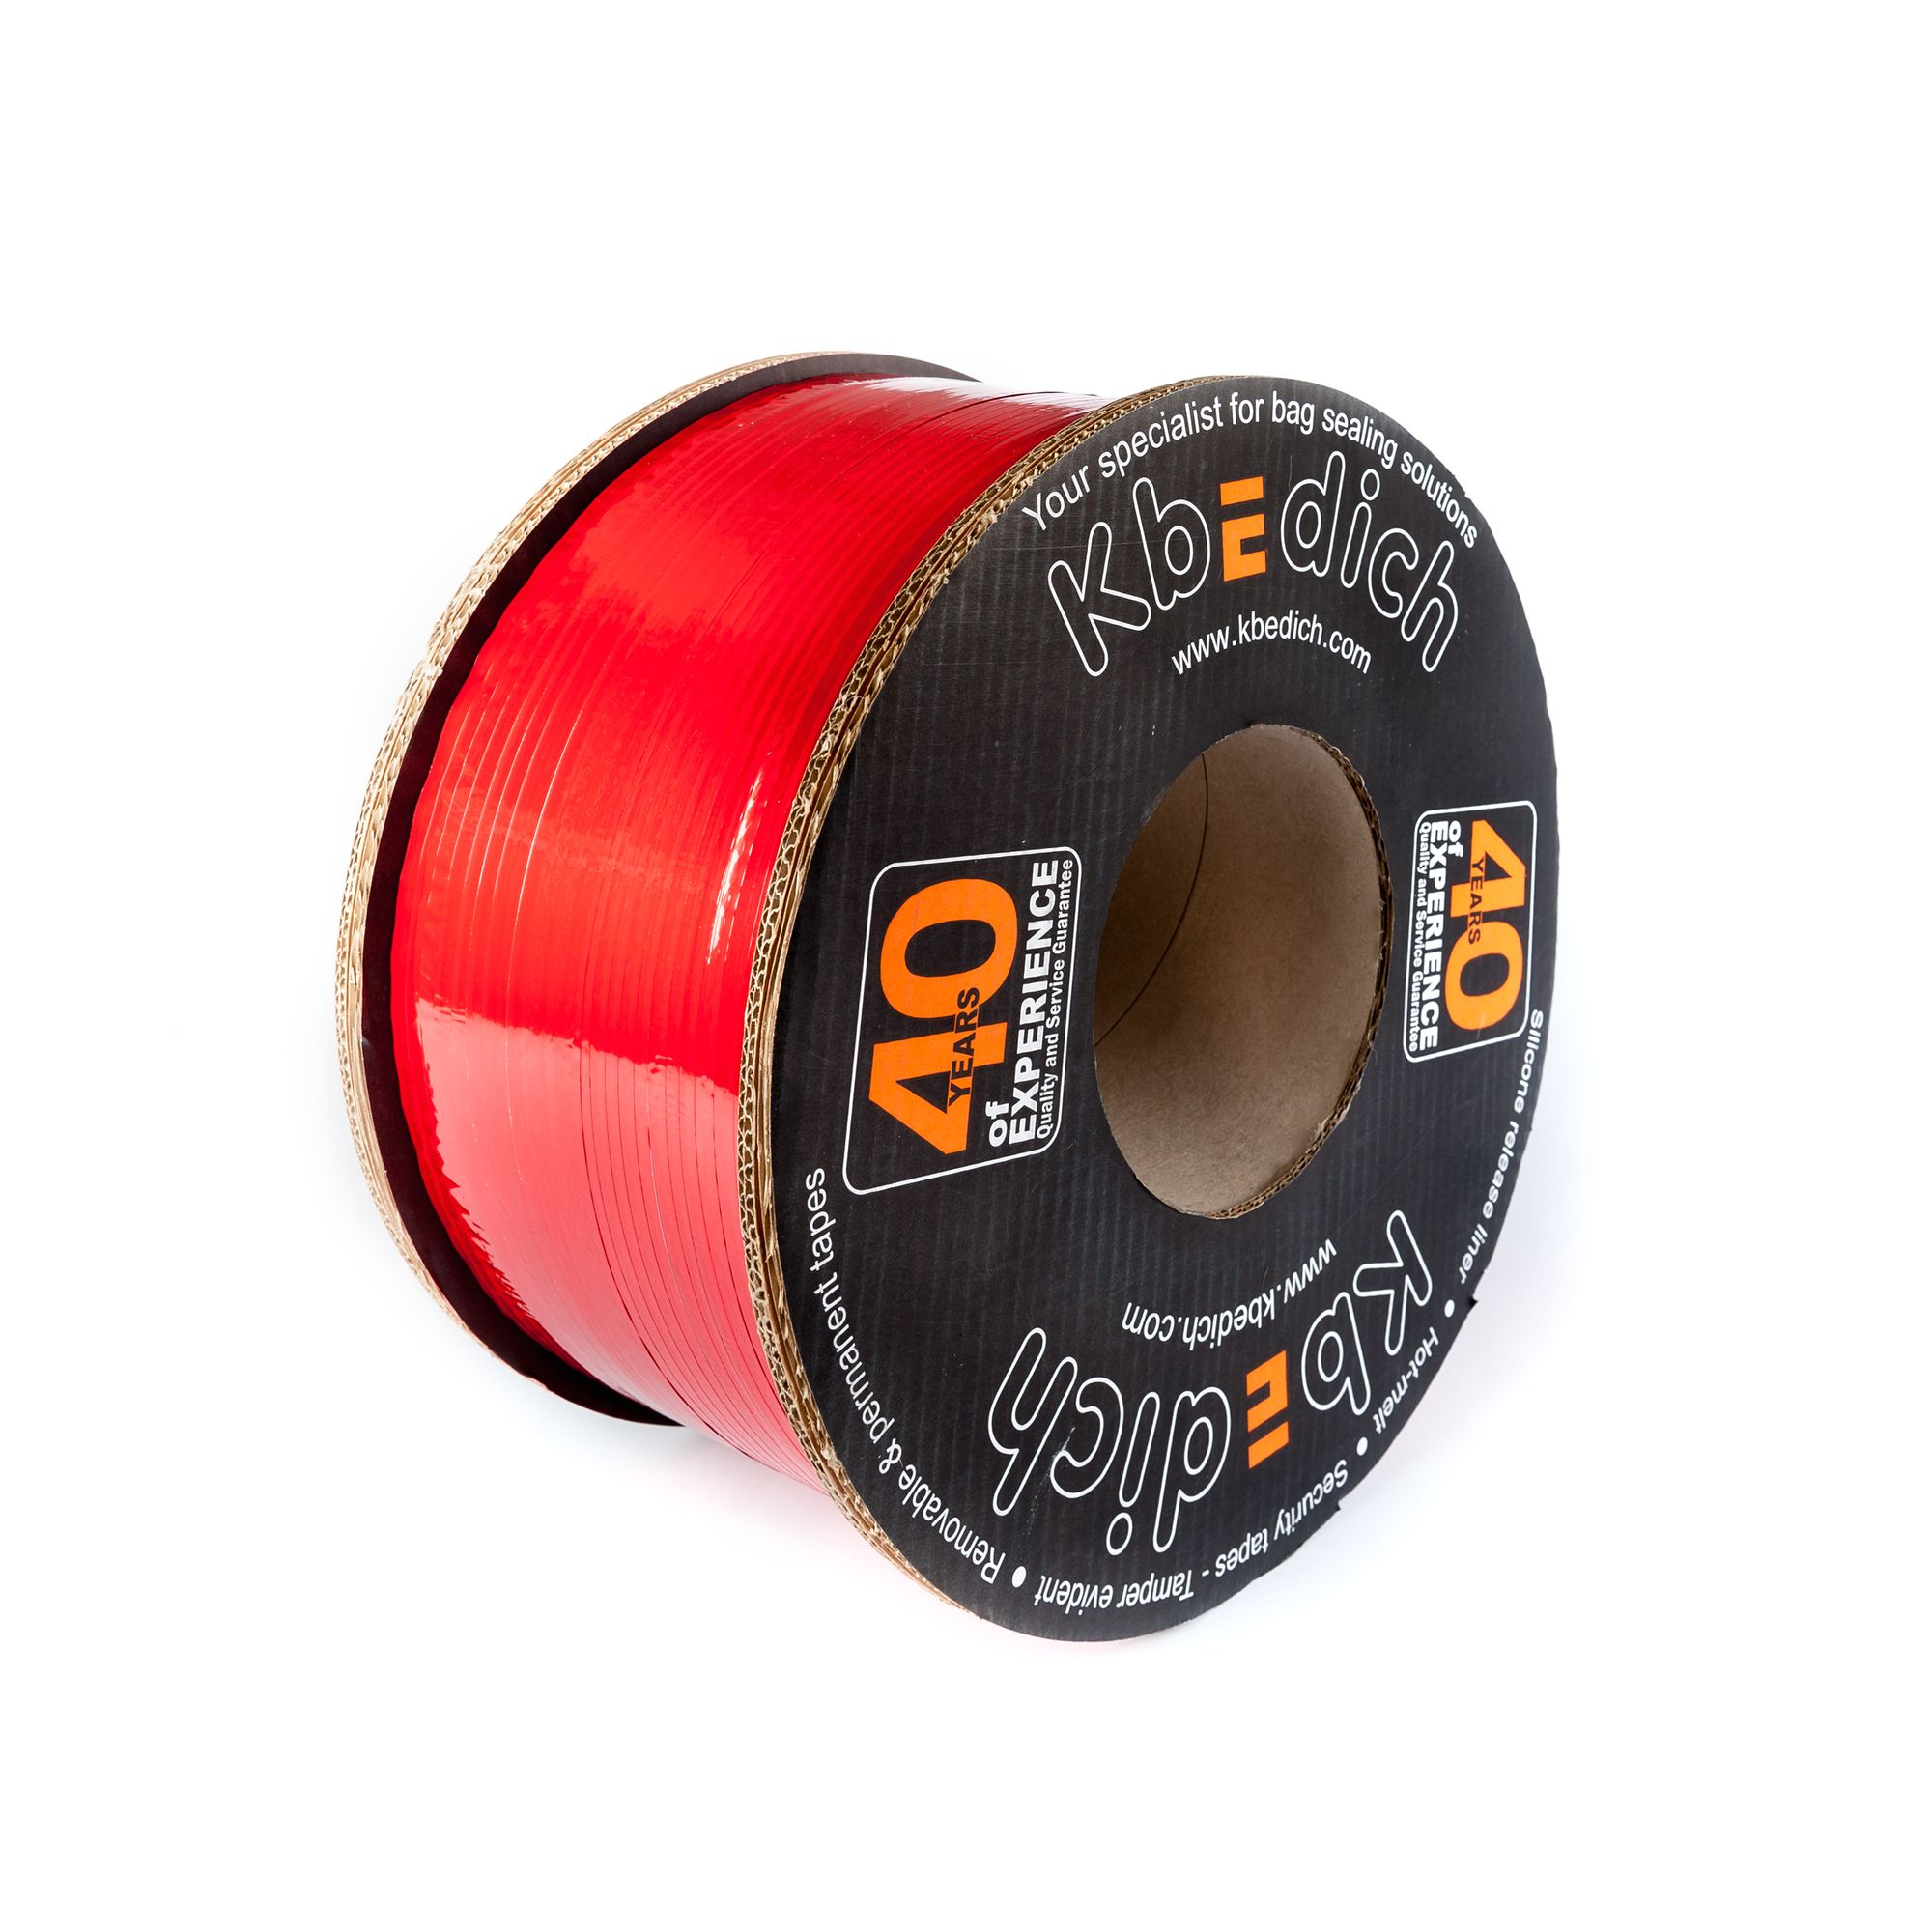 Film transfers – Tamper evident – Certified by Applus - Permanent tape closures - Permanent tape closures - Hotmelt adhesive - Hotmelt adhesive - The security tape company - Reseleable tape Closures - Silicone release liner - http://www.kbedich.com